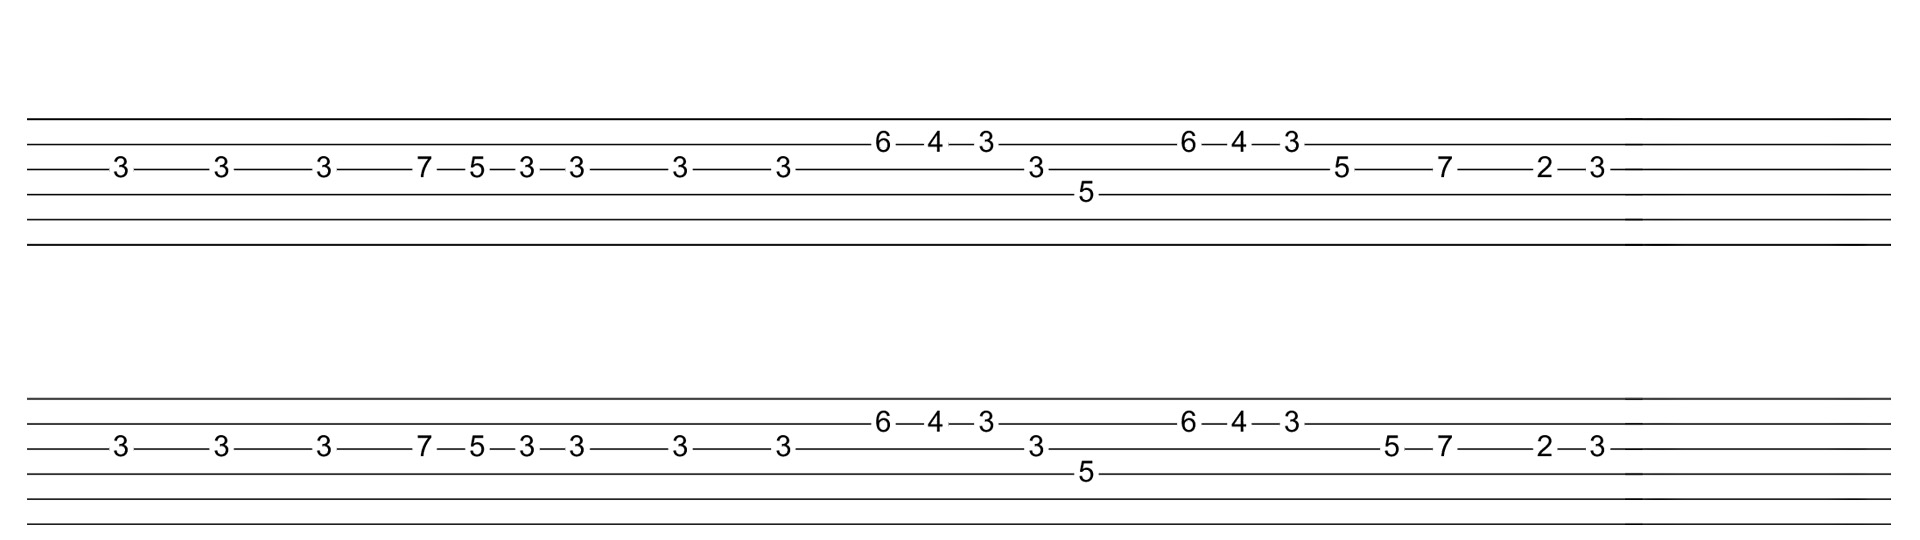 Christina perri a thousand years tabs kfir ochaion tabs for my electric guitar cover for the song a thousand years by christina perri hexwebz Image collections